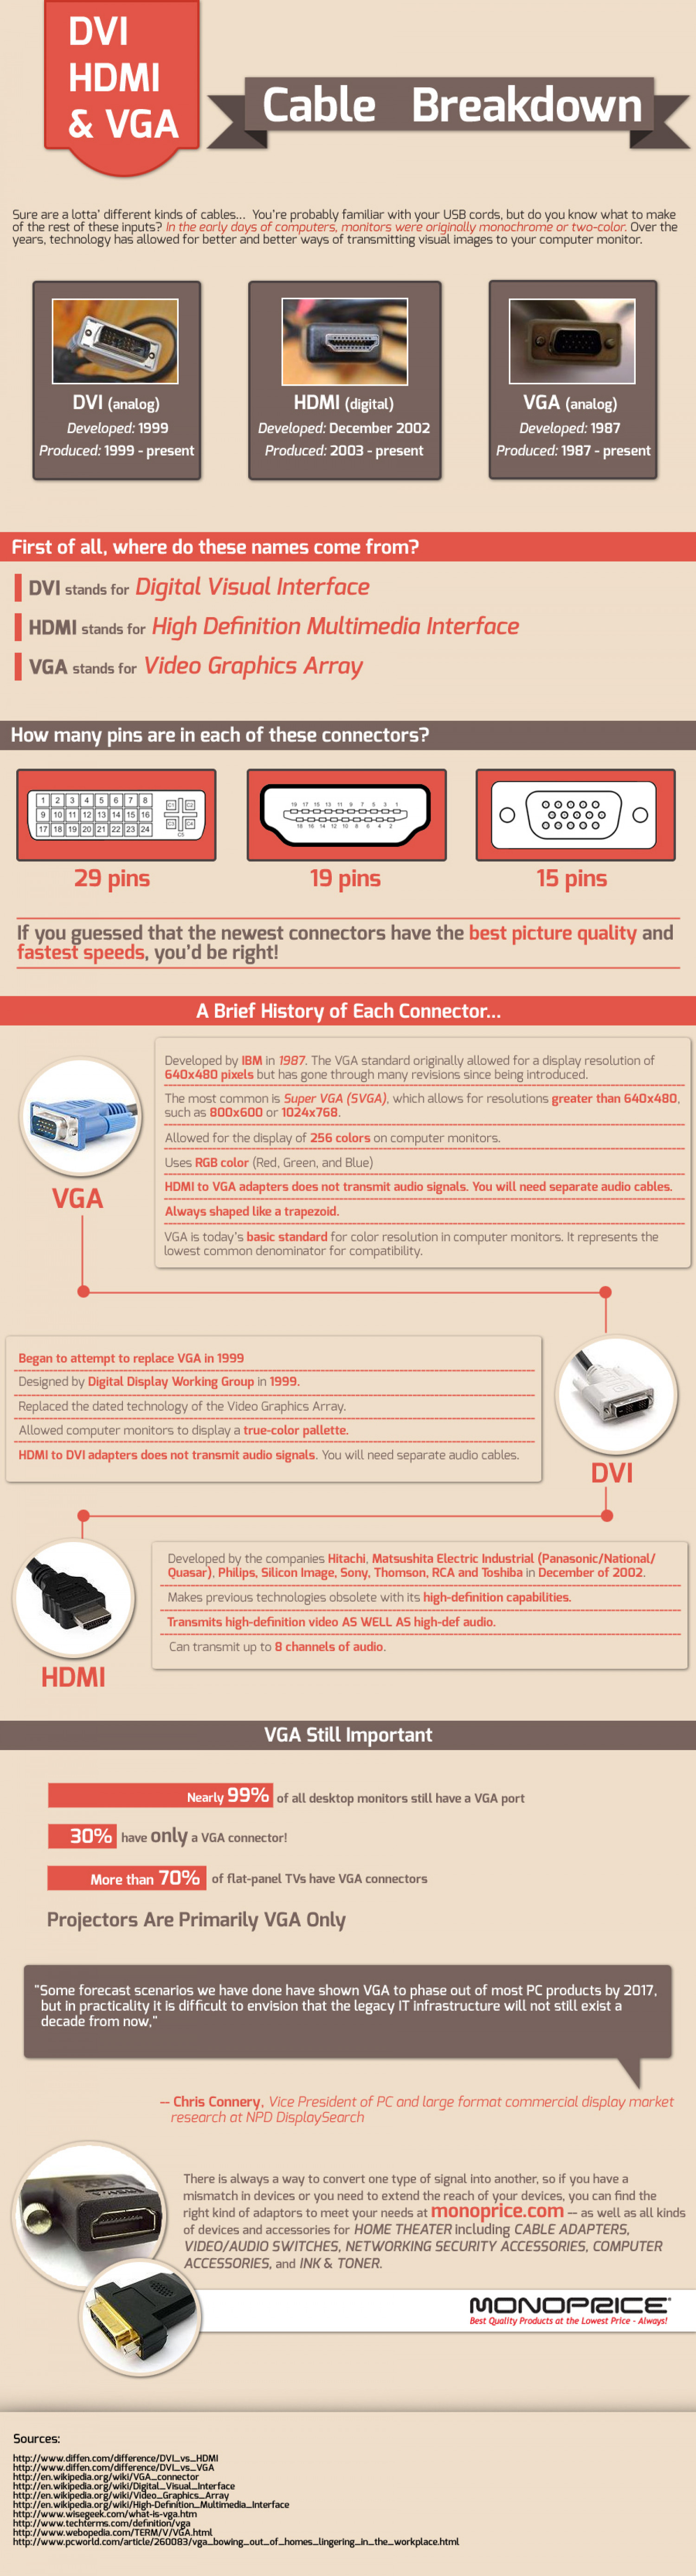 hight resolution of dvi hdmi vga cable breakdown infographic